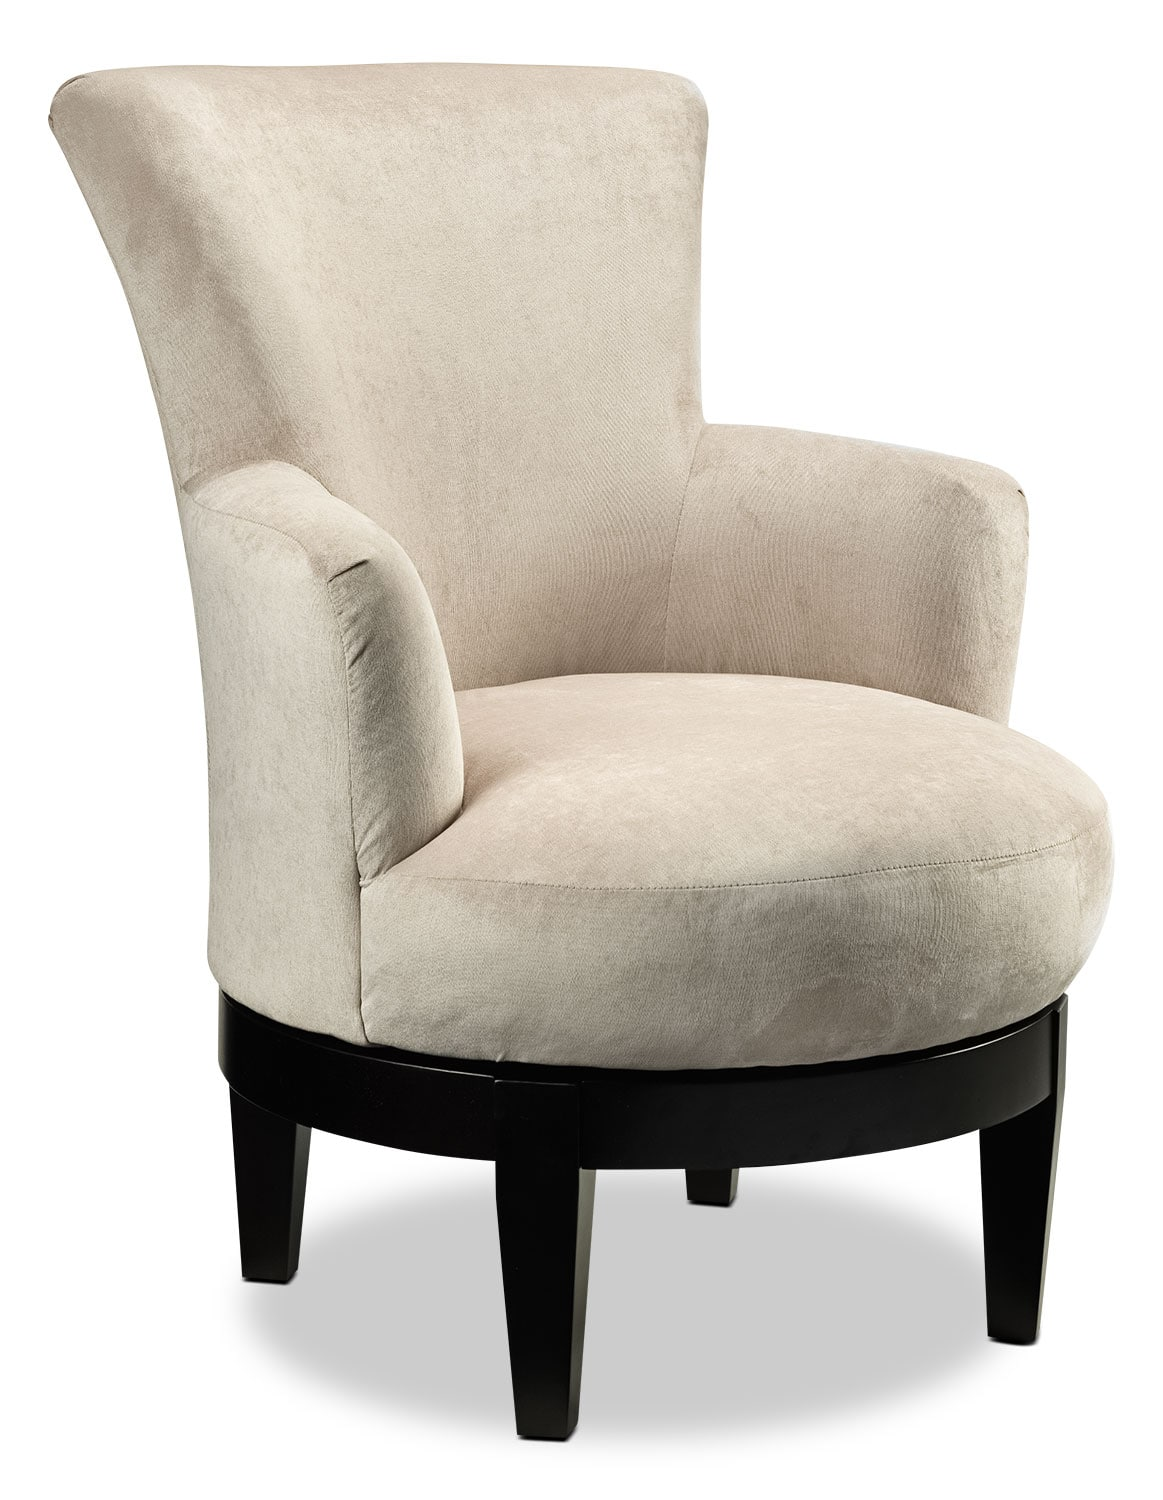 Justine Accent Chair - Beige